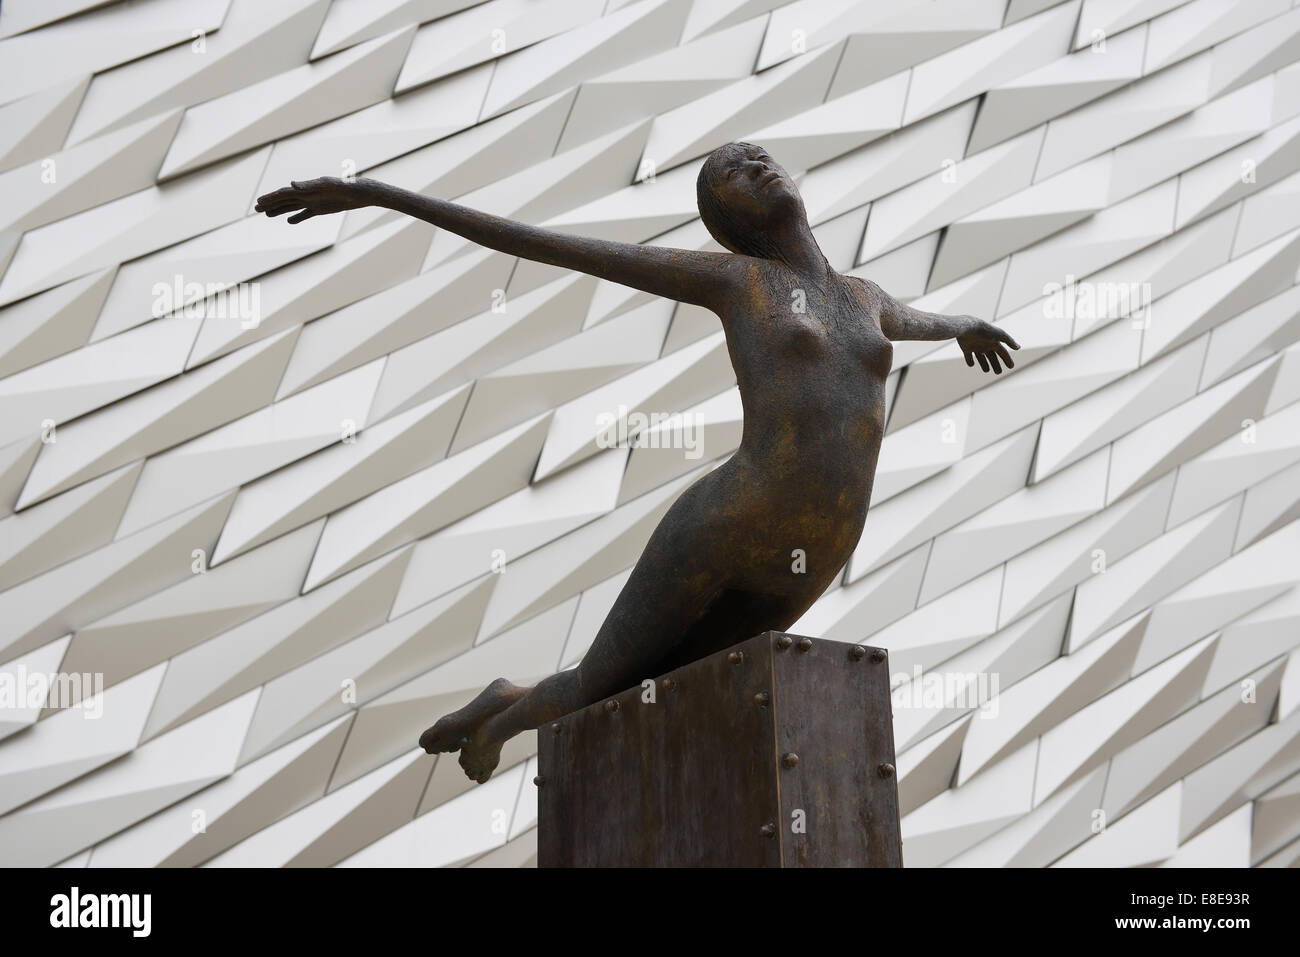 The sculpture Titanica by Rowan Gillespie outside Titanic Belfast - Stock Image